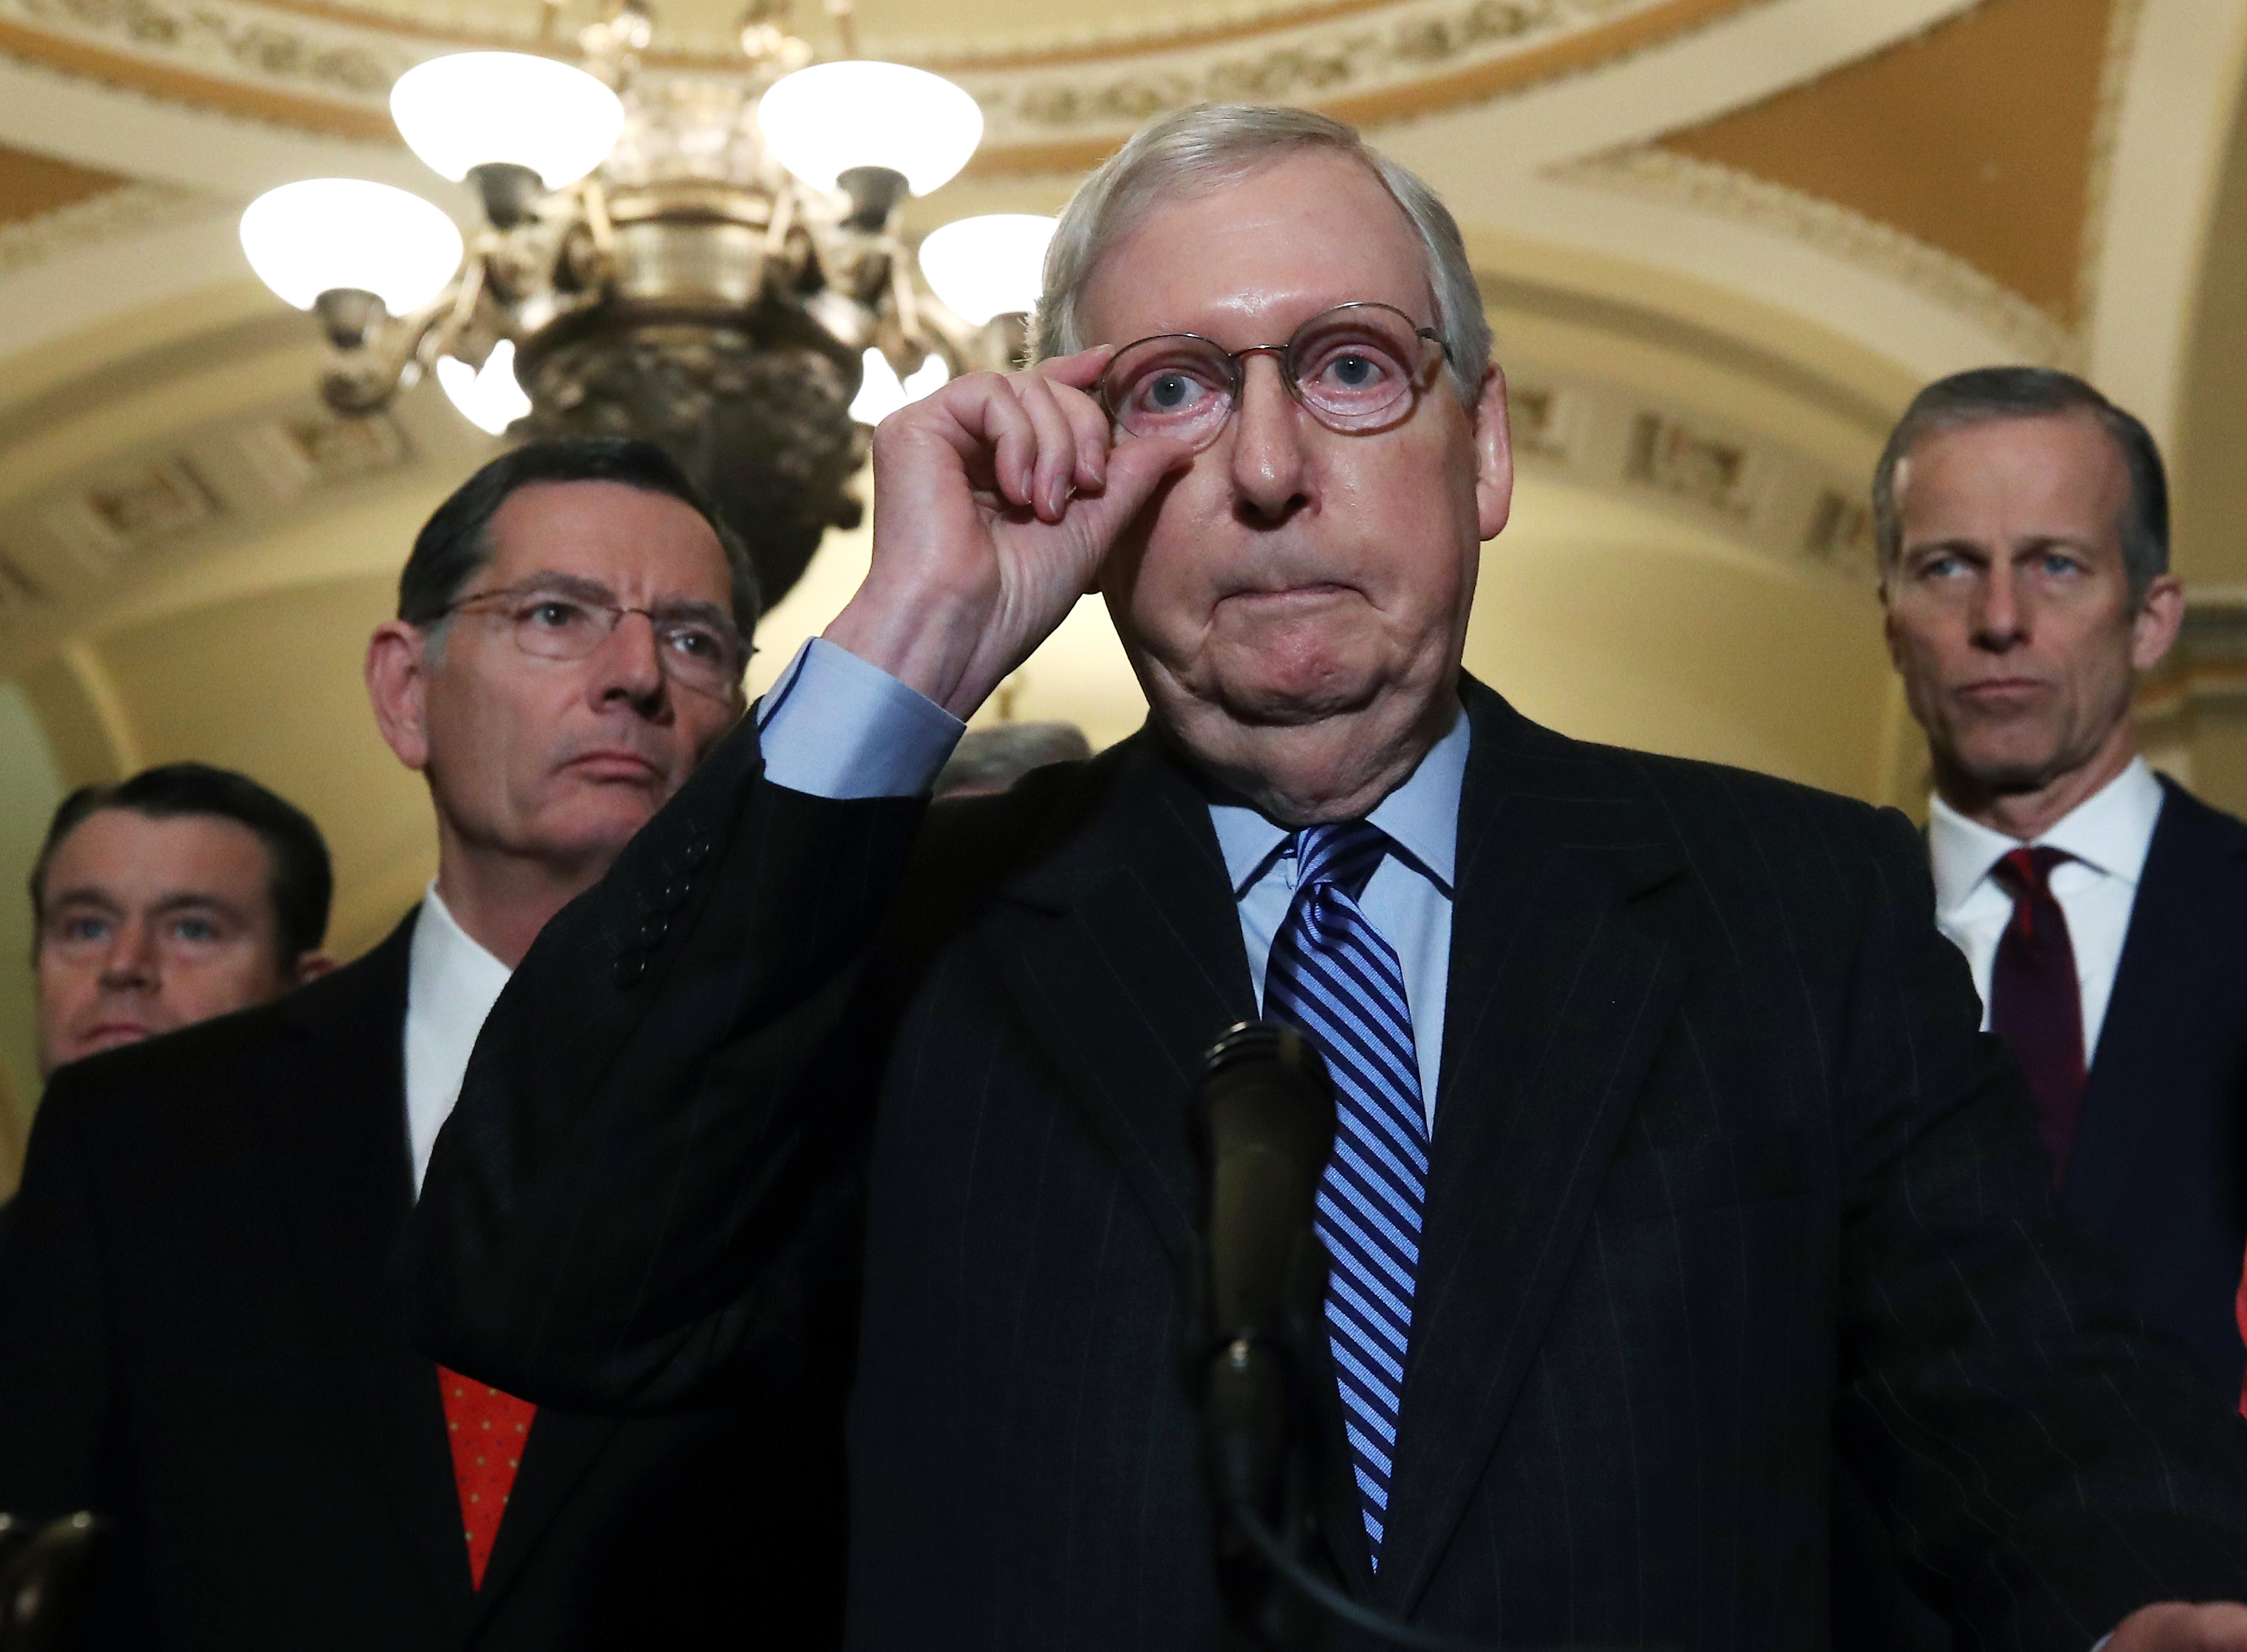 Senate Majority Leader Mitch McConnell talks to reporters after attending the weekly Senate Republicans' policy luncheon on Jan. 07, 2020 in Washington, D.C.